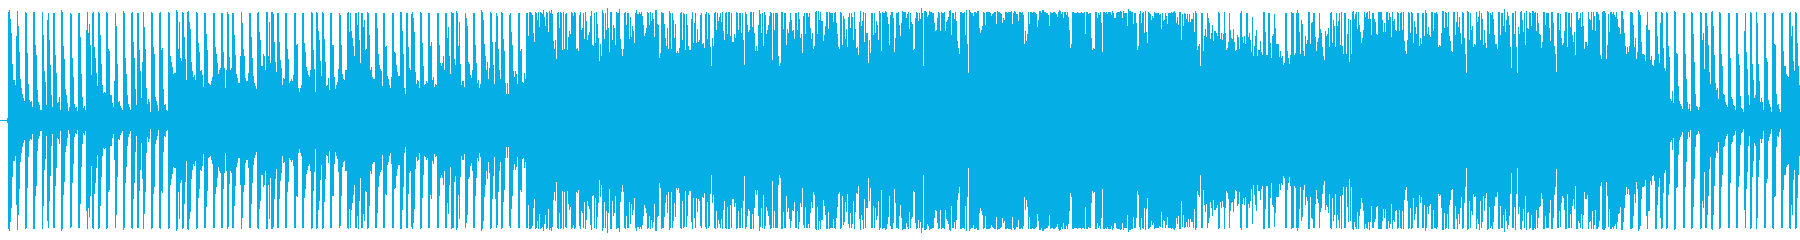 RPG for RPG (loop specification)'s reproduced waveform